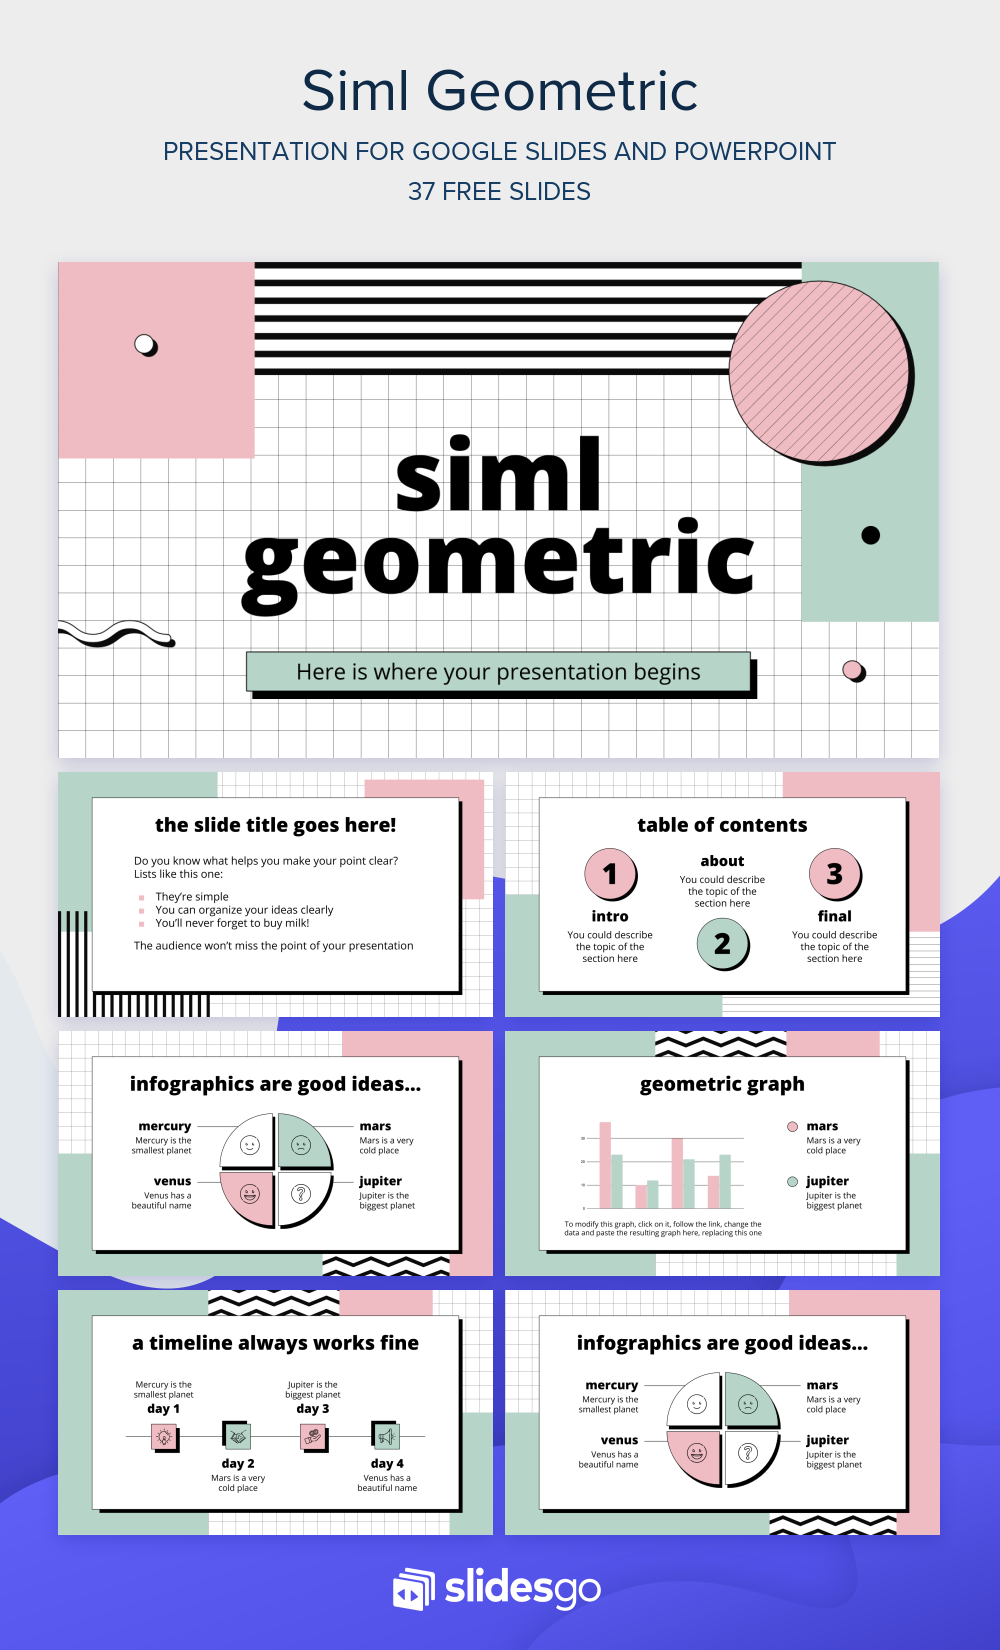 Download And Edit This Cool Geometric Presentation It S Available As Google Slides Theme And Powerpoin Desain Powerpoint Desain Presentasi Templat Power Point